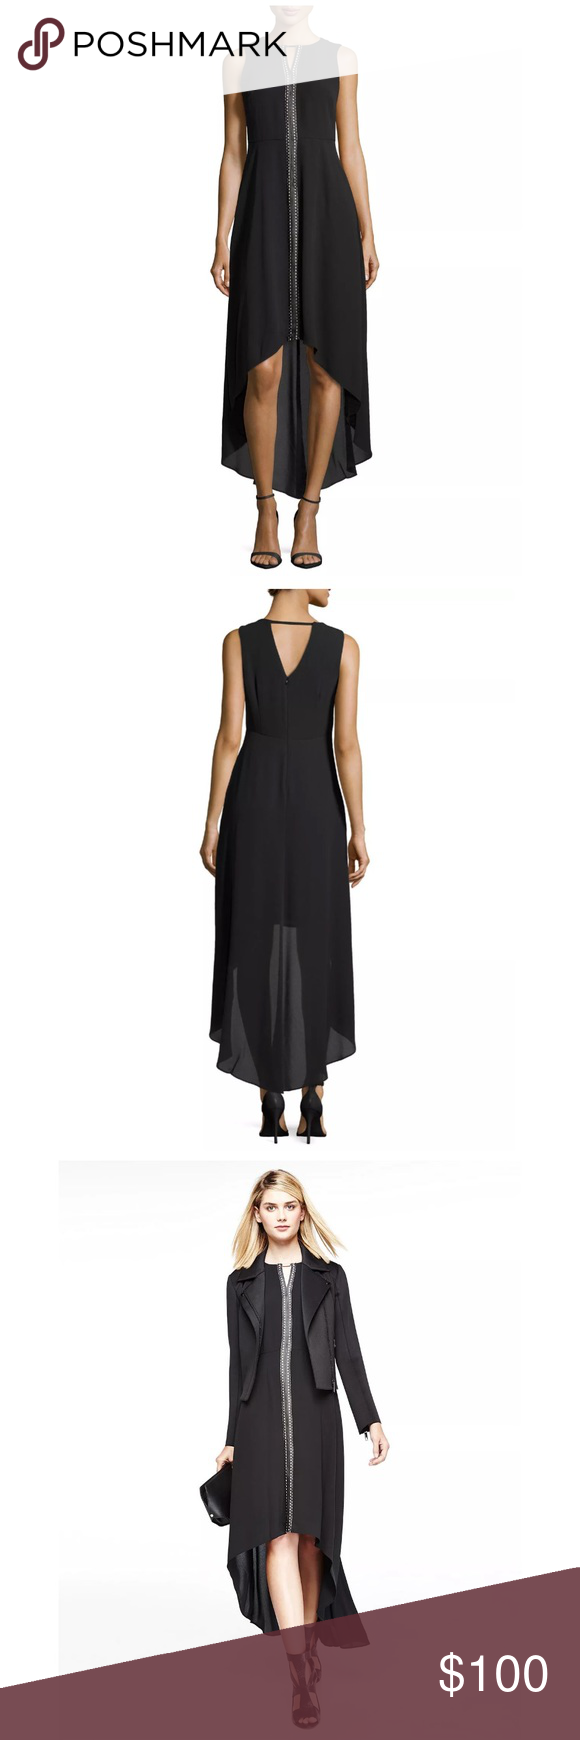 """🎁 HP 🎁 MUSE hi-lo sleeveless black maxi dress MUSE knit maxi dress. Approx. 39""""L front; 55 1/2""""L back. Caftan neckline; metallic beaded neck. Sleeveless; thin shoulder coverage. Mesh cutout down front. Tailored bodice. Measurements:  Empire waist. High-low hem. Back zip closure. Polyester; self-lined; dry clean. Imported.  Bust:  38"""" Waist:  32""""  Hips: 45"""" Muse Refined Dresses High Low"""